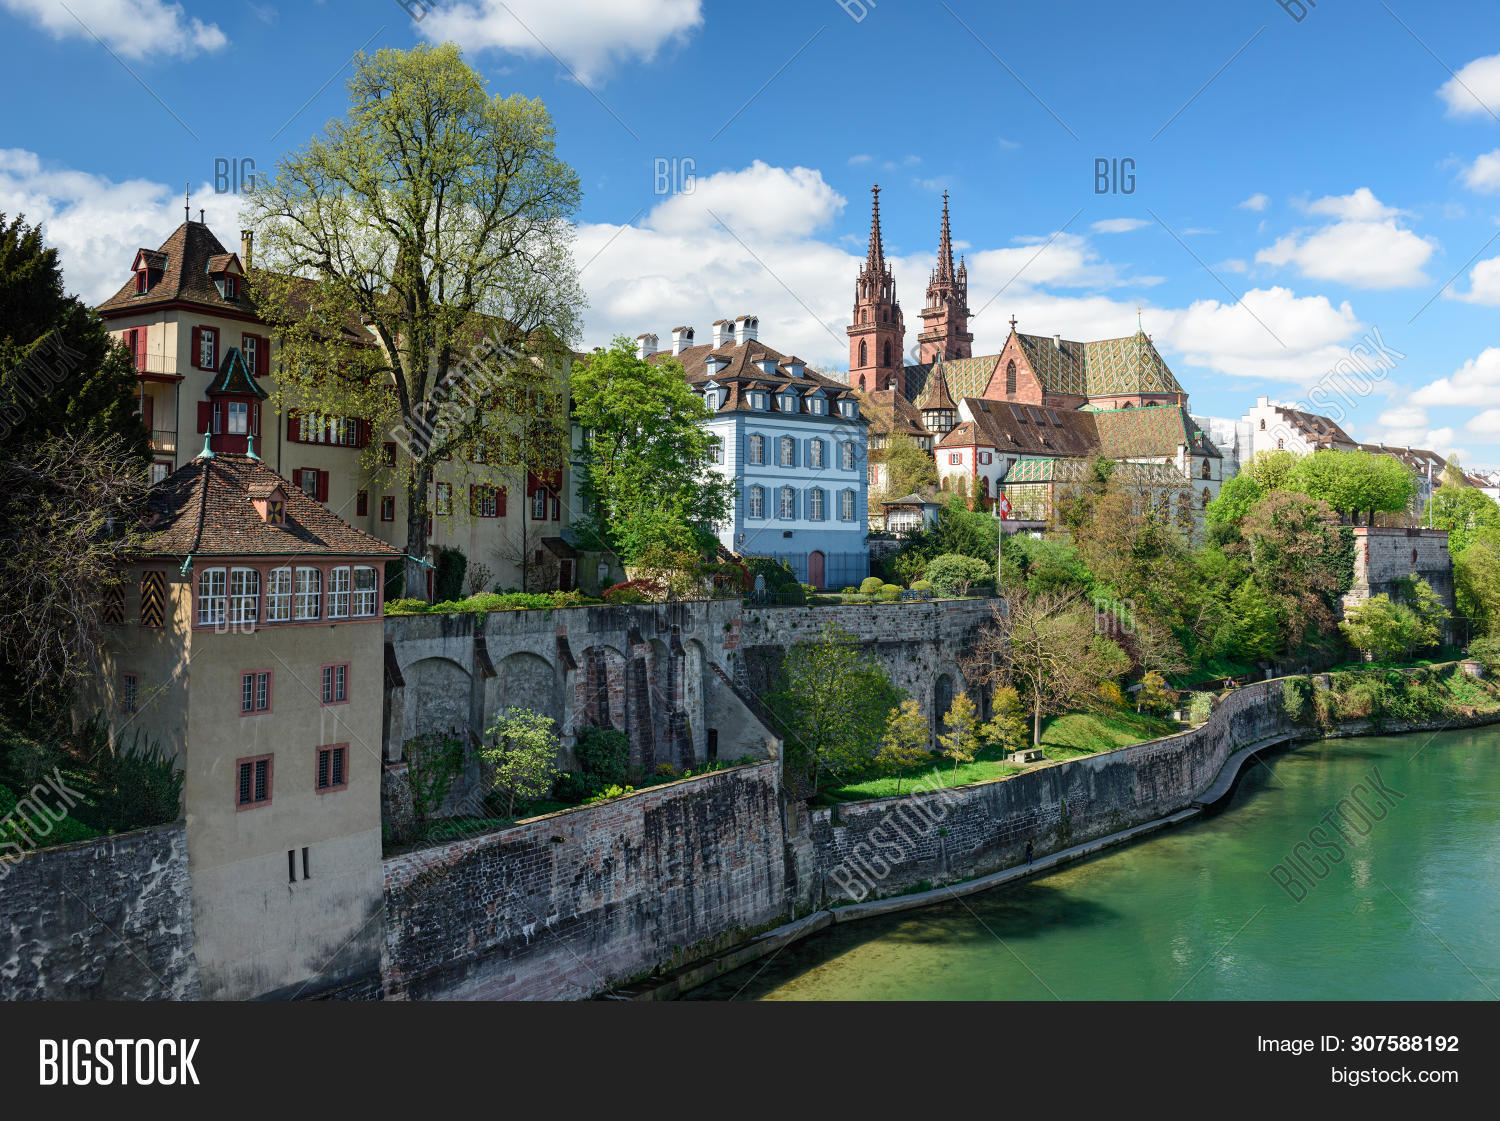 alps,altstadt,ancient,architecture,attraction,basel,basler,beautiful,blue,building,cathedral,center,centre,church,city,cityscape,cloud,destination,downtown,embankment,europe,european,famous,grossbasel,historic,historical,house,landmark,monument,muenster,munster,old,promenade,rhine,river,scene,sightseeing,sky,skyline,spring,summer,sun,swiss,switzerland,tour,tourist,tower,town,travel,view